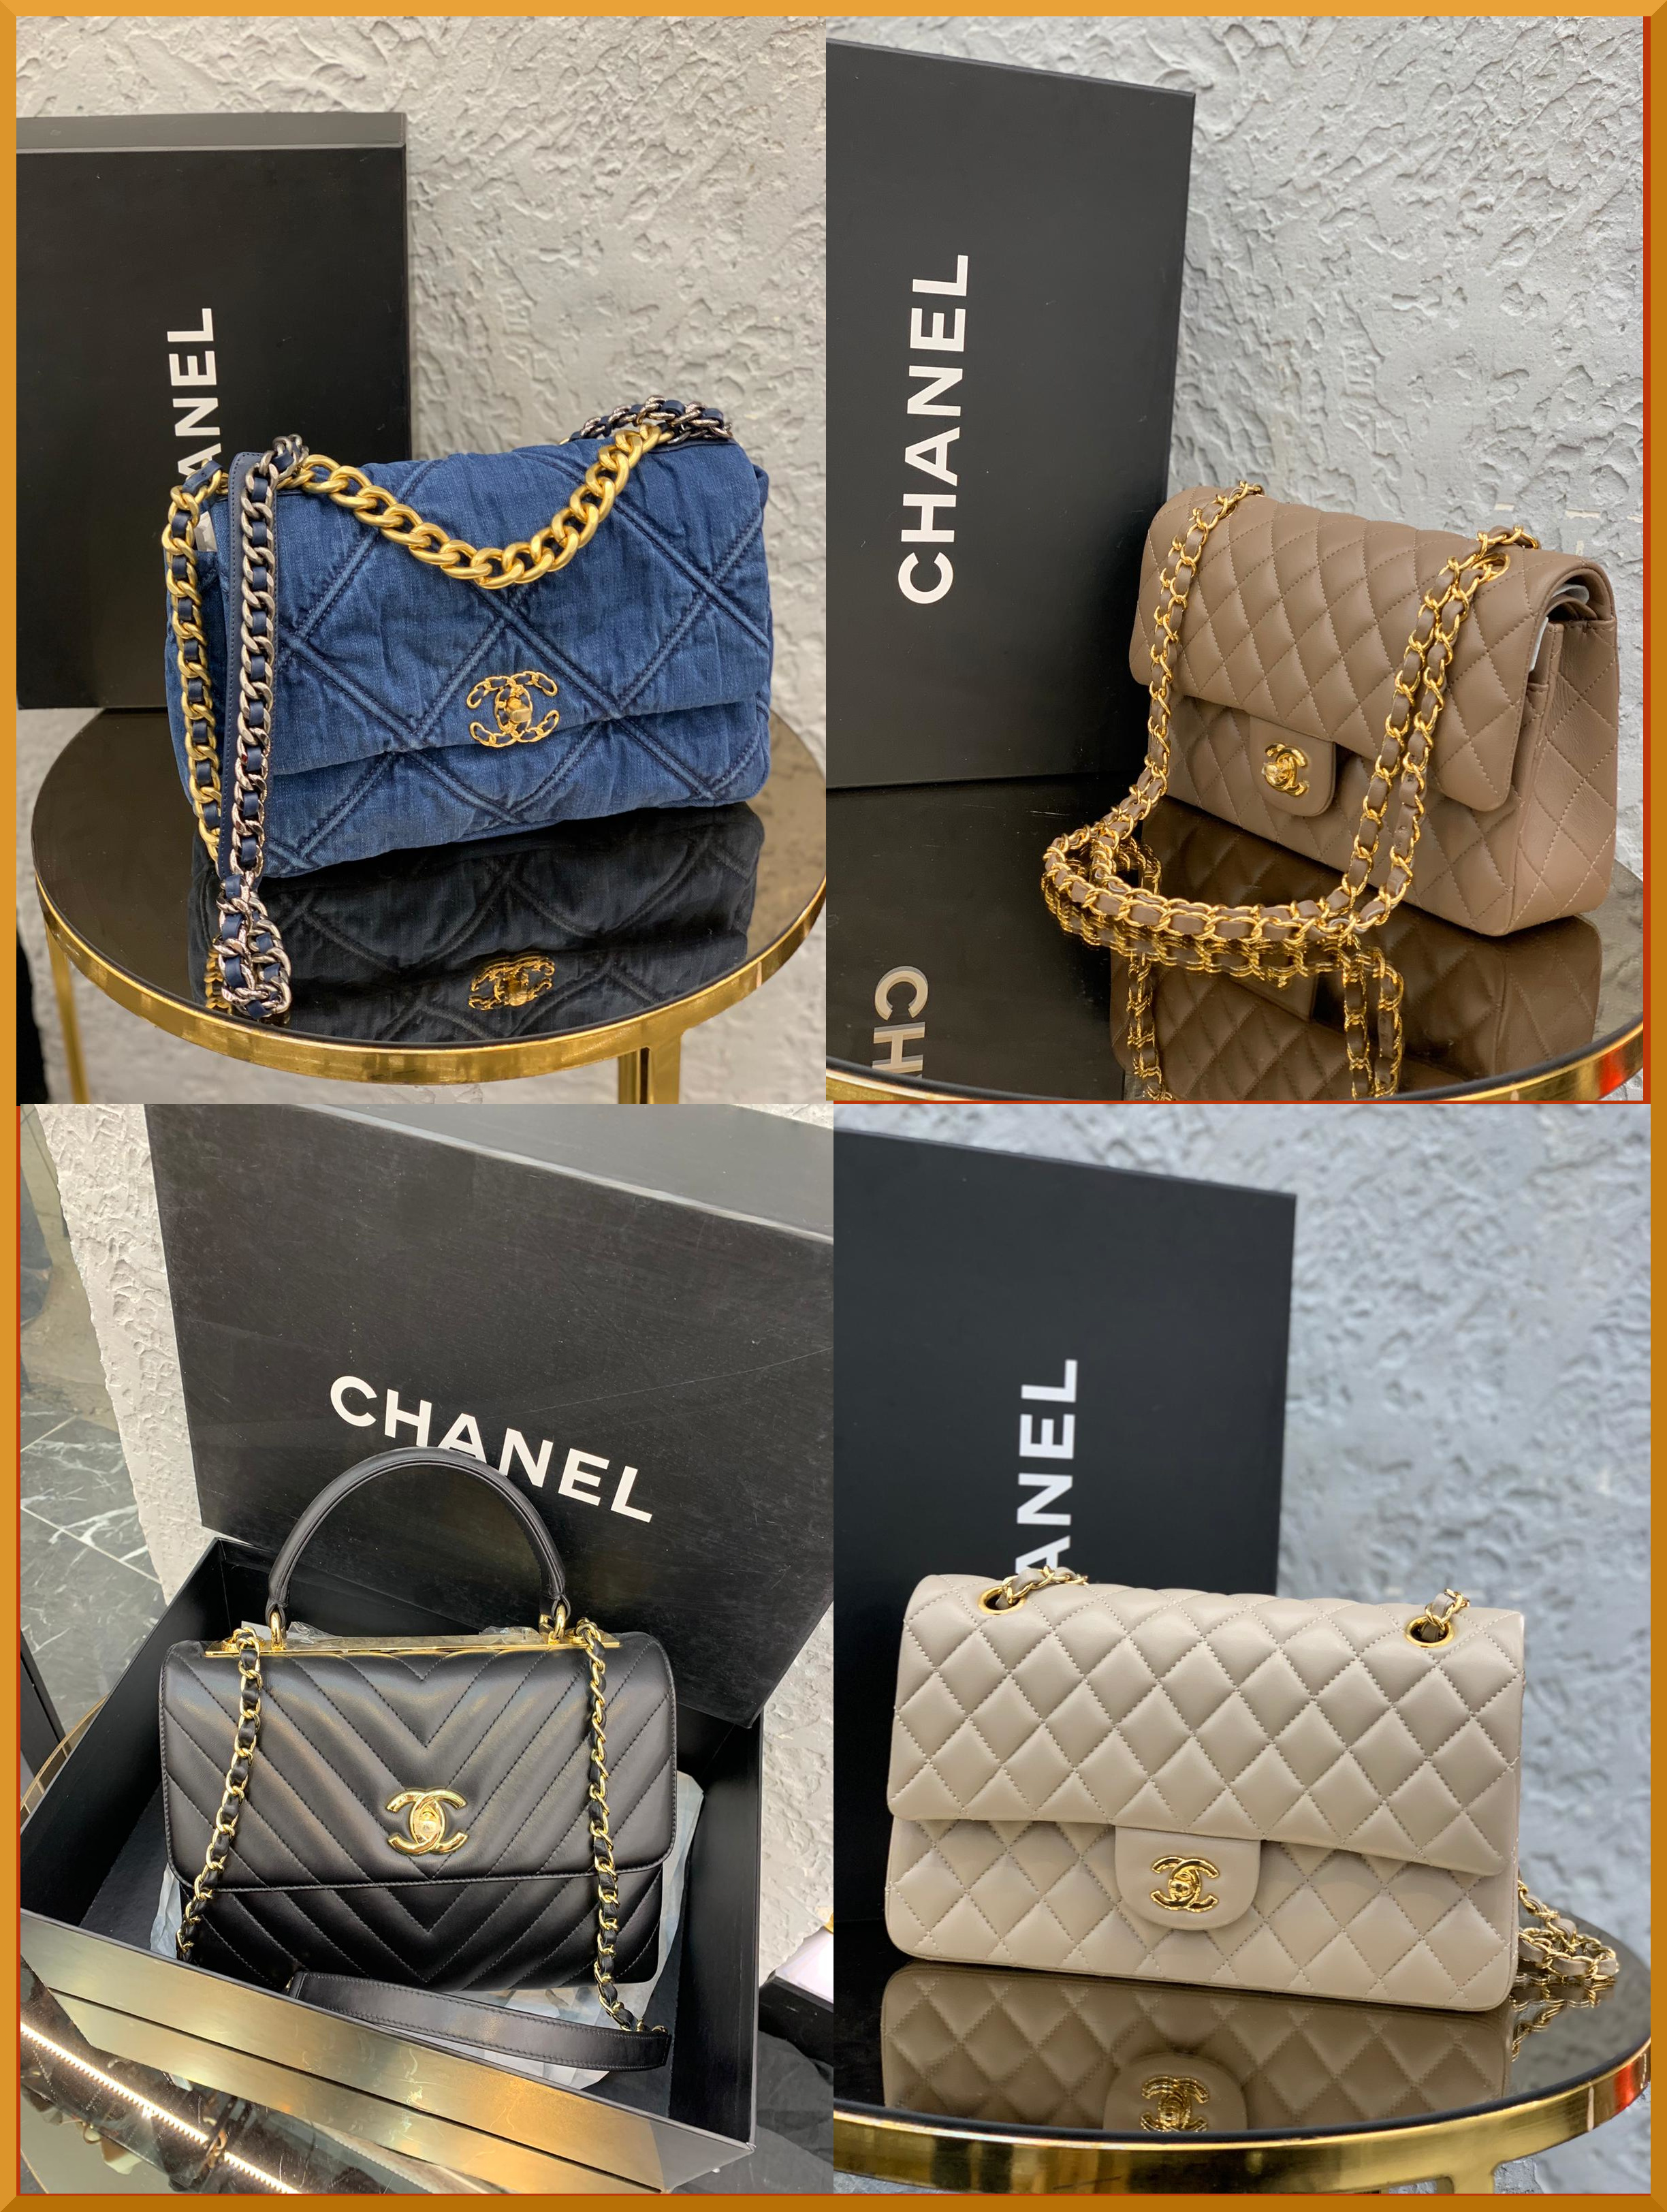 Chanel is classic and iconic yet new for every season. Chanel does young and trendy denim handbags and more serious and mature bags all the same.